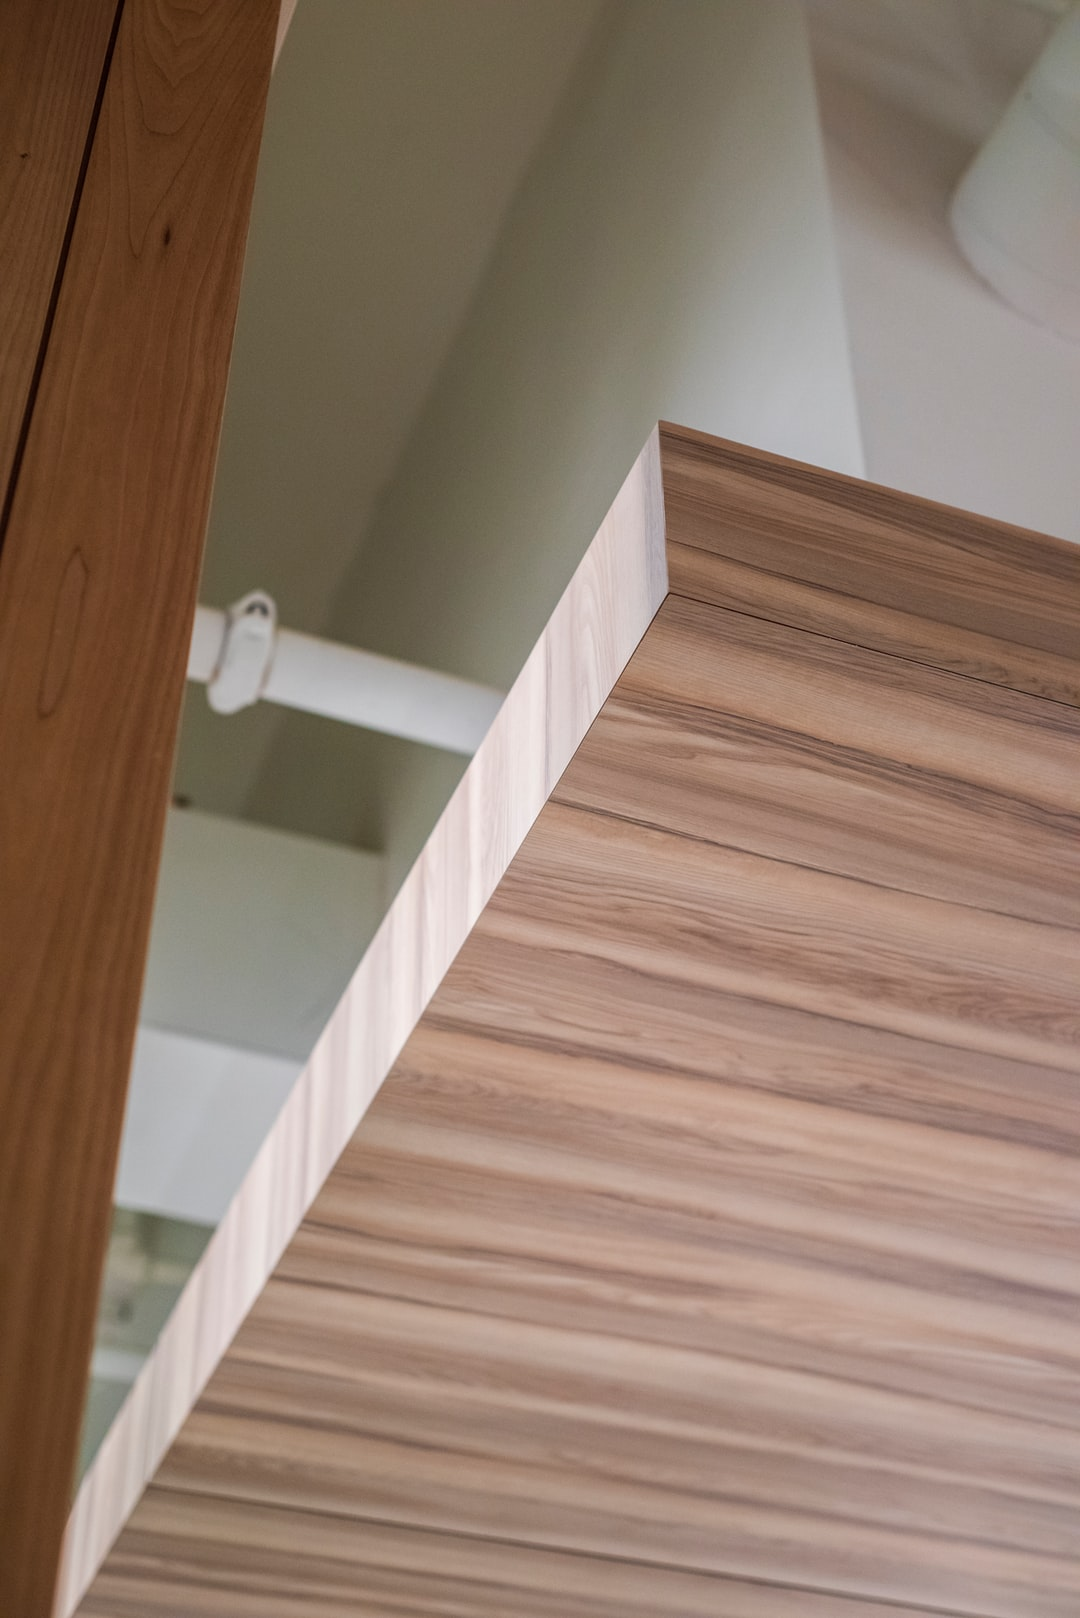 Non-Toxic Wood Sealers and Eco-Friendly Wood Sealers